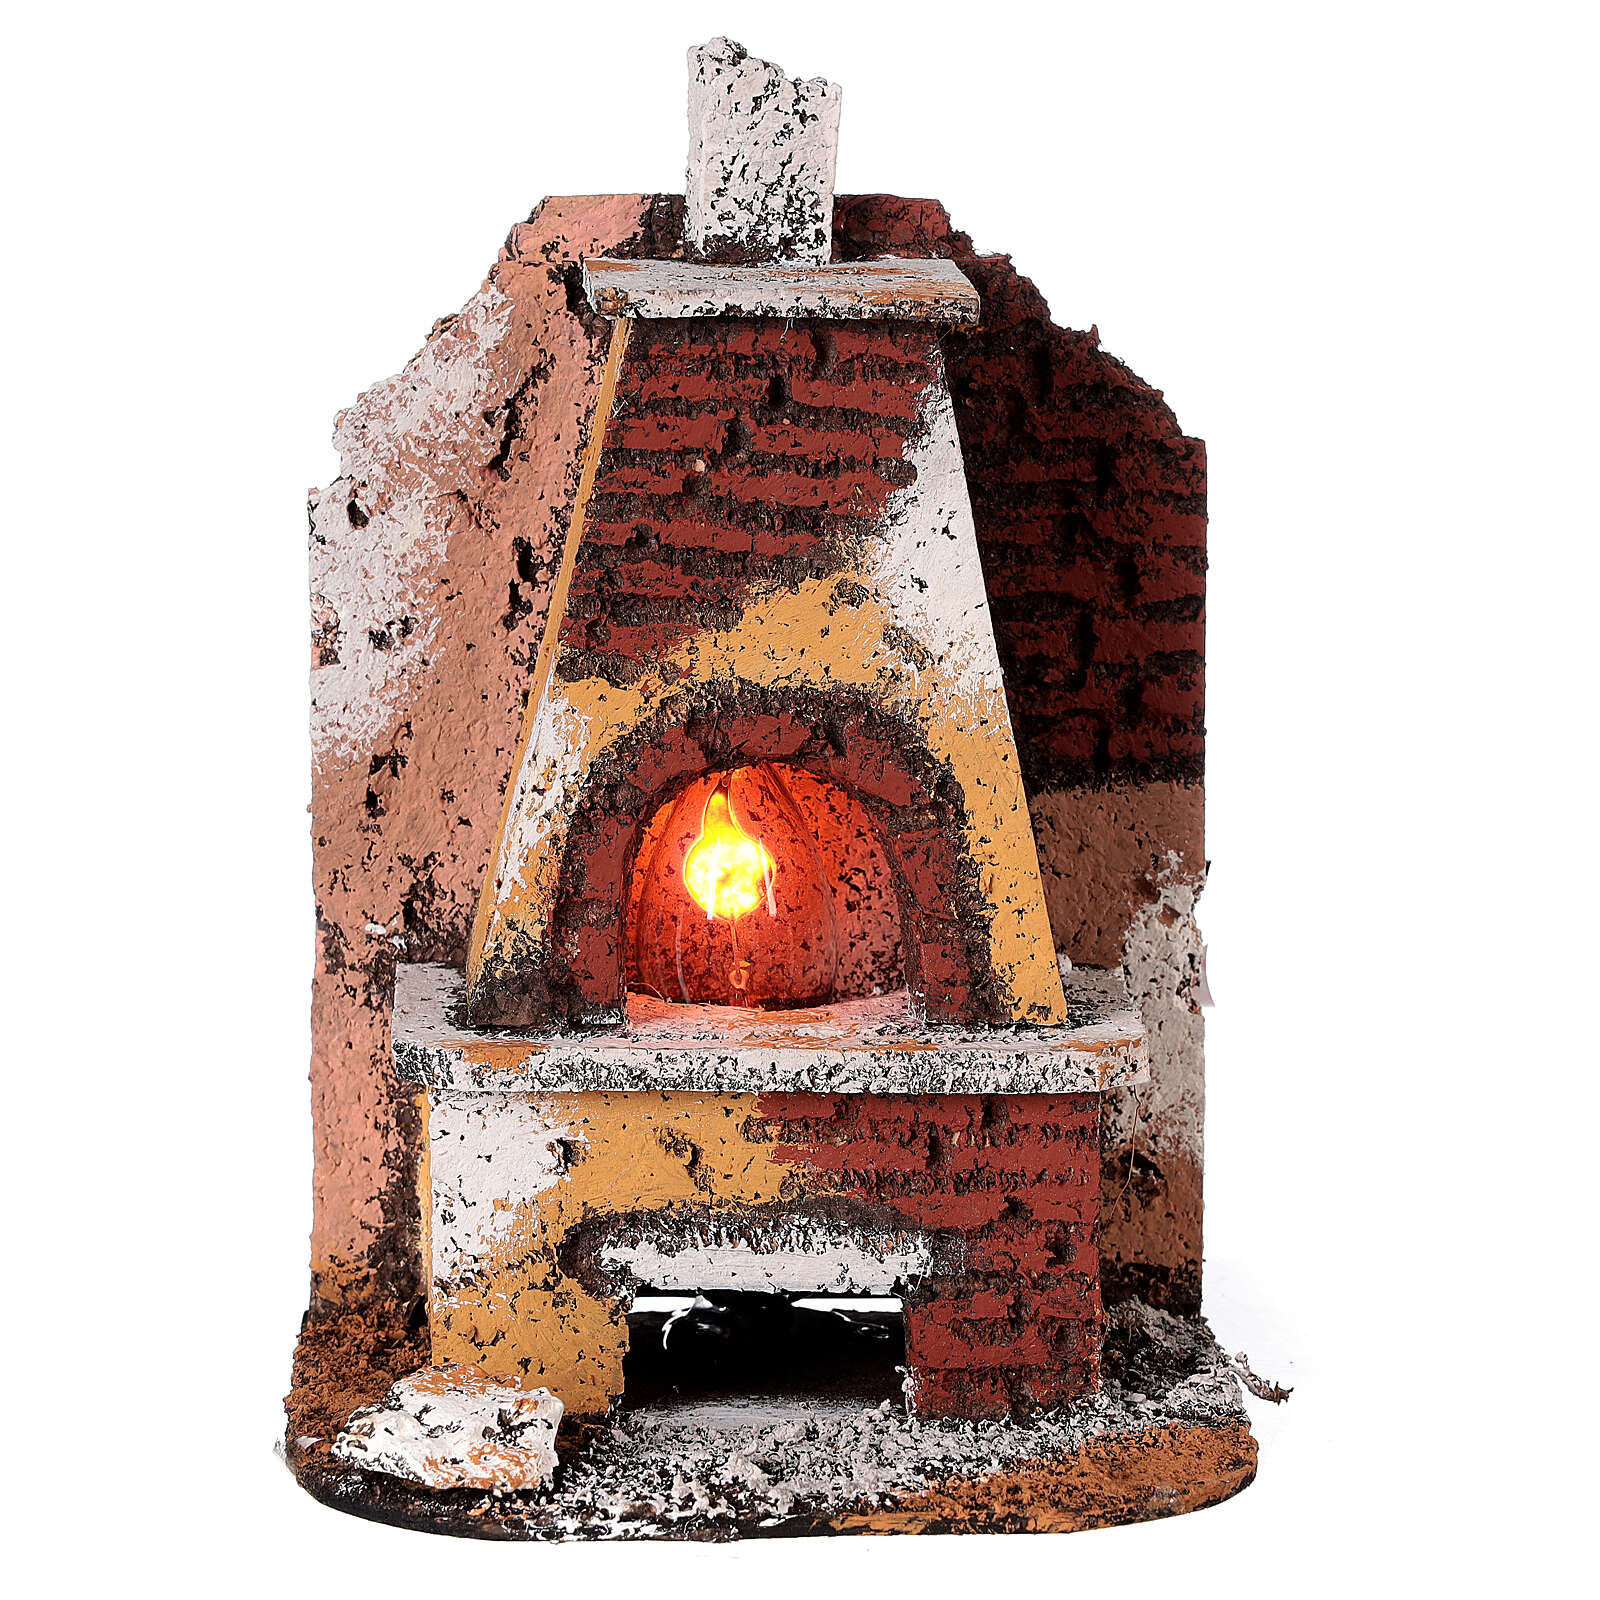 Masonry oven with light fire effect 15x10x10 cm for Neapolitan Nativity Scene with 8-10 cm figurines 4